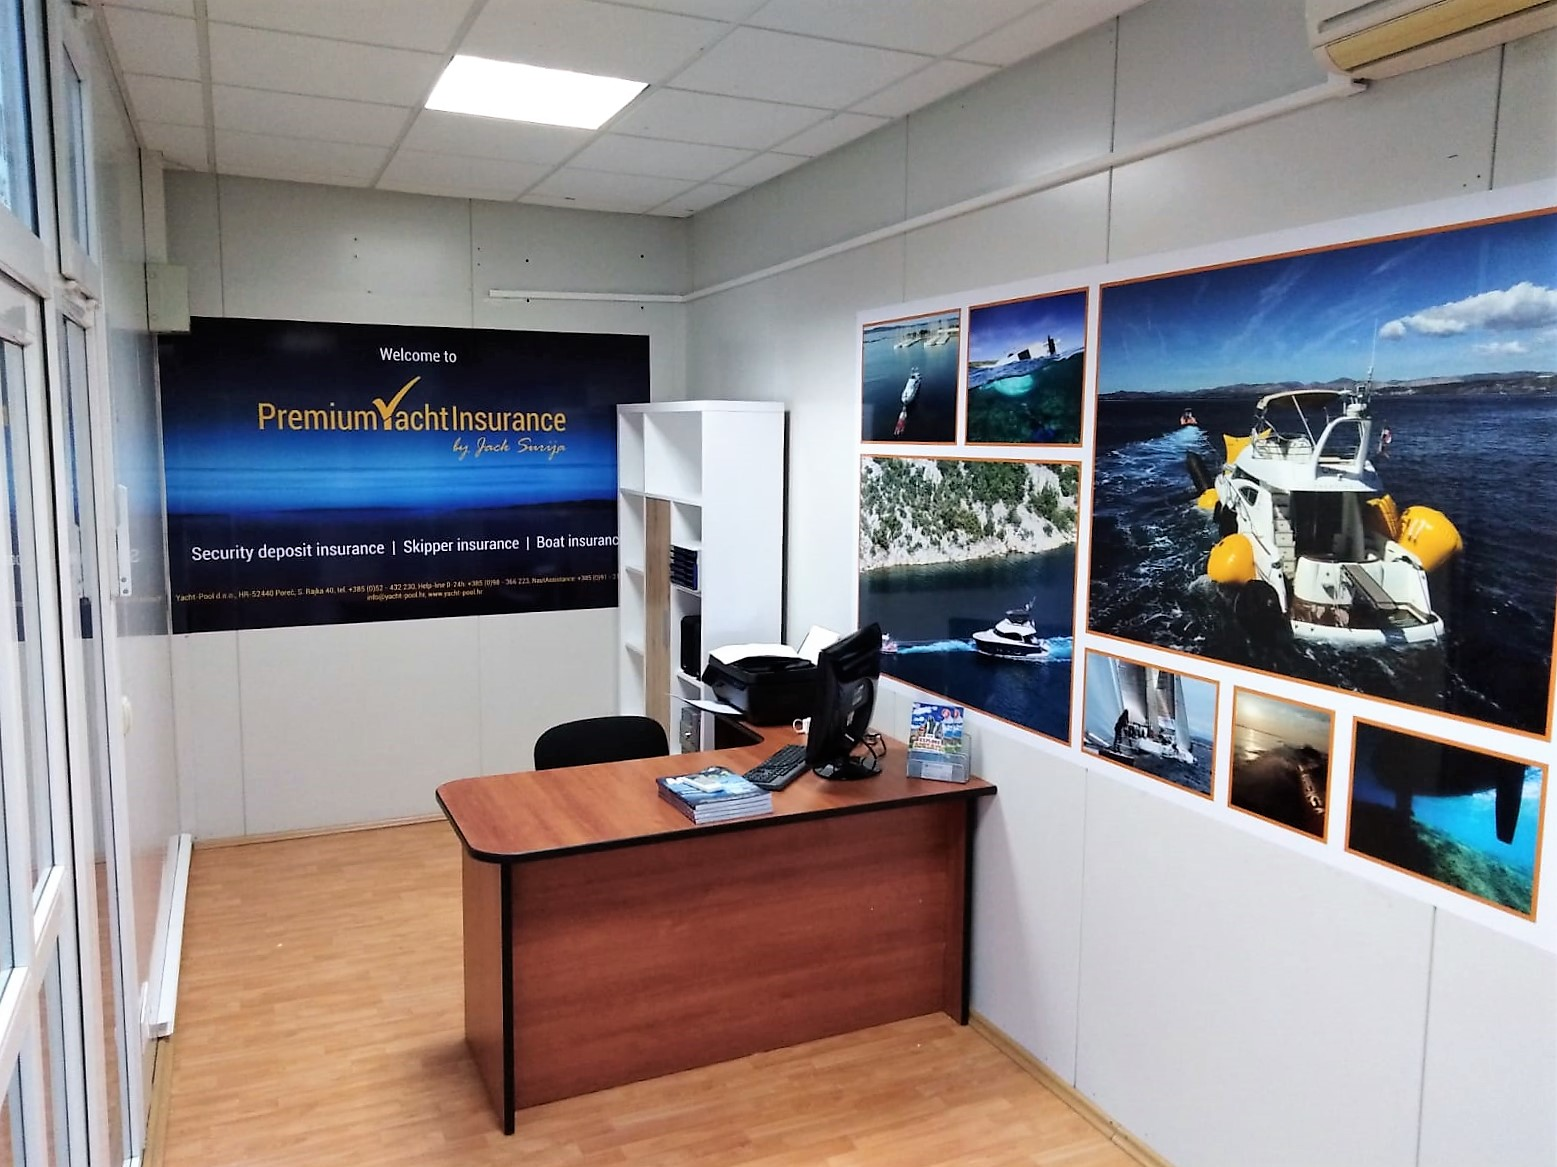 Premium Yacht Insurance office in Biograd na moru